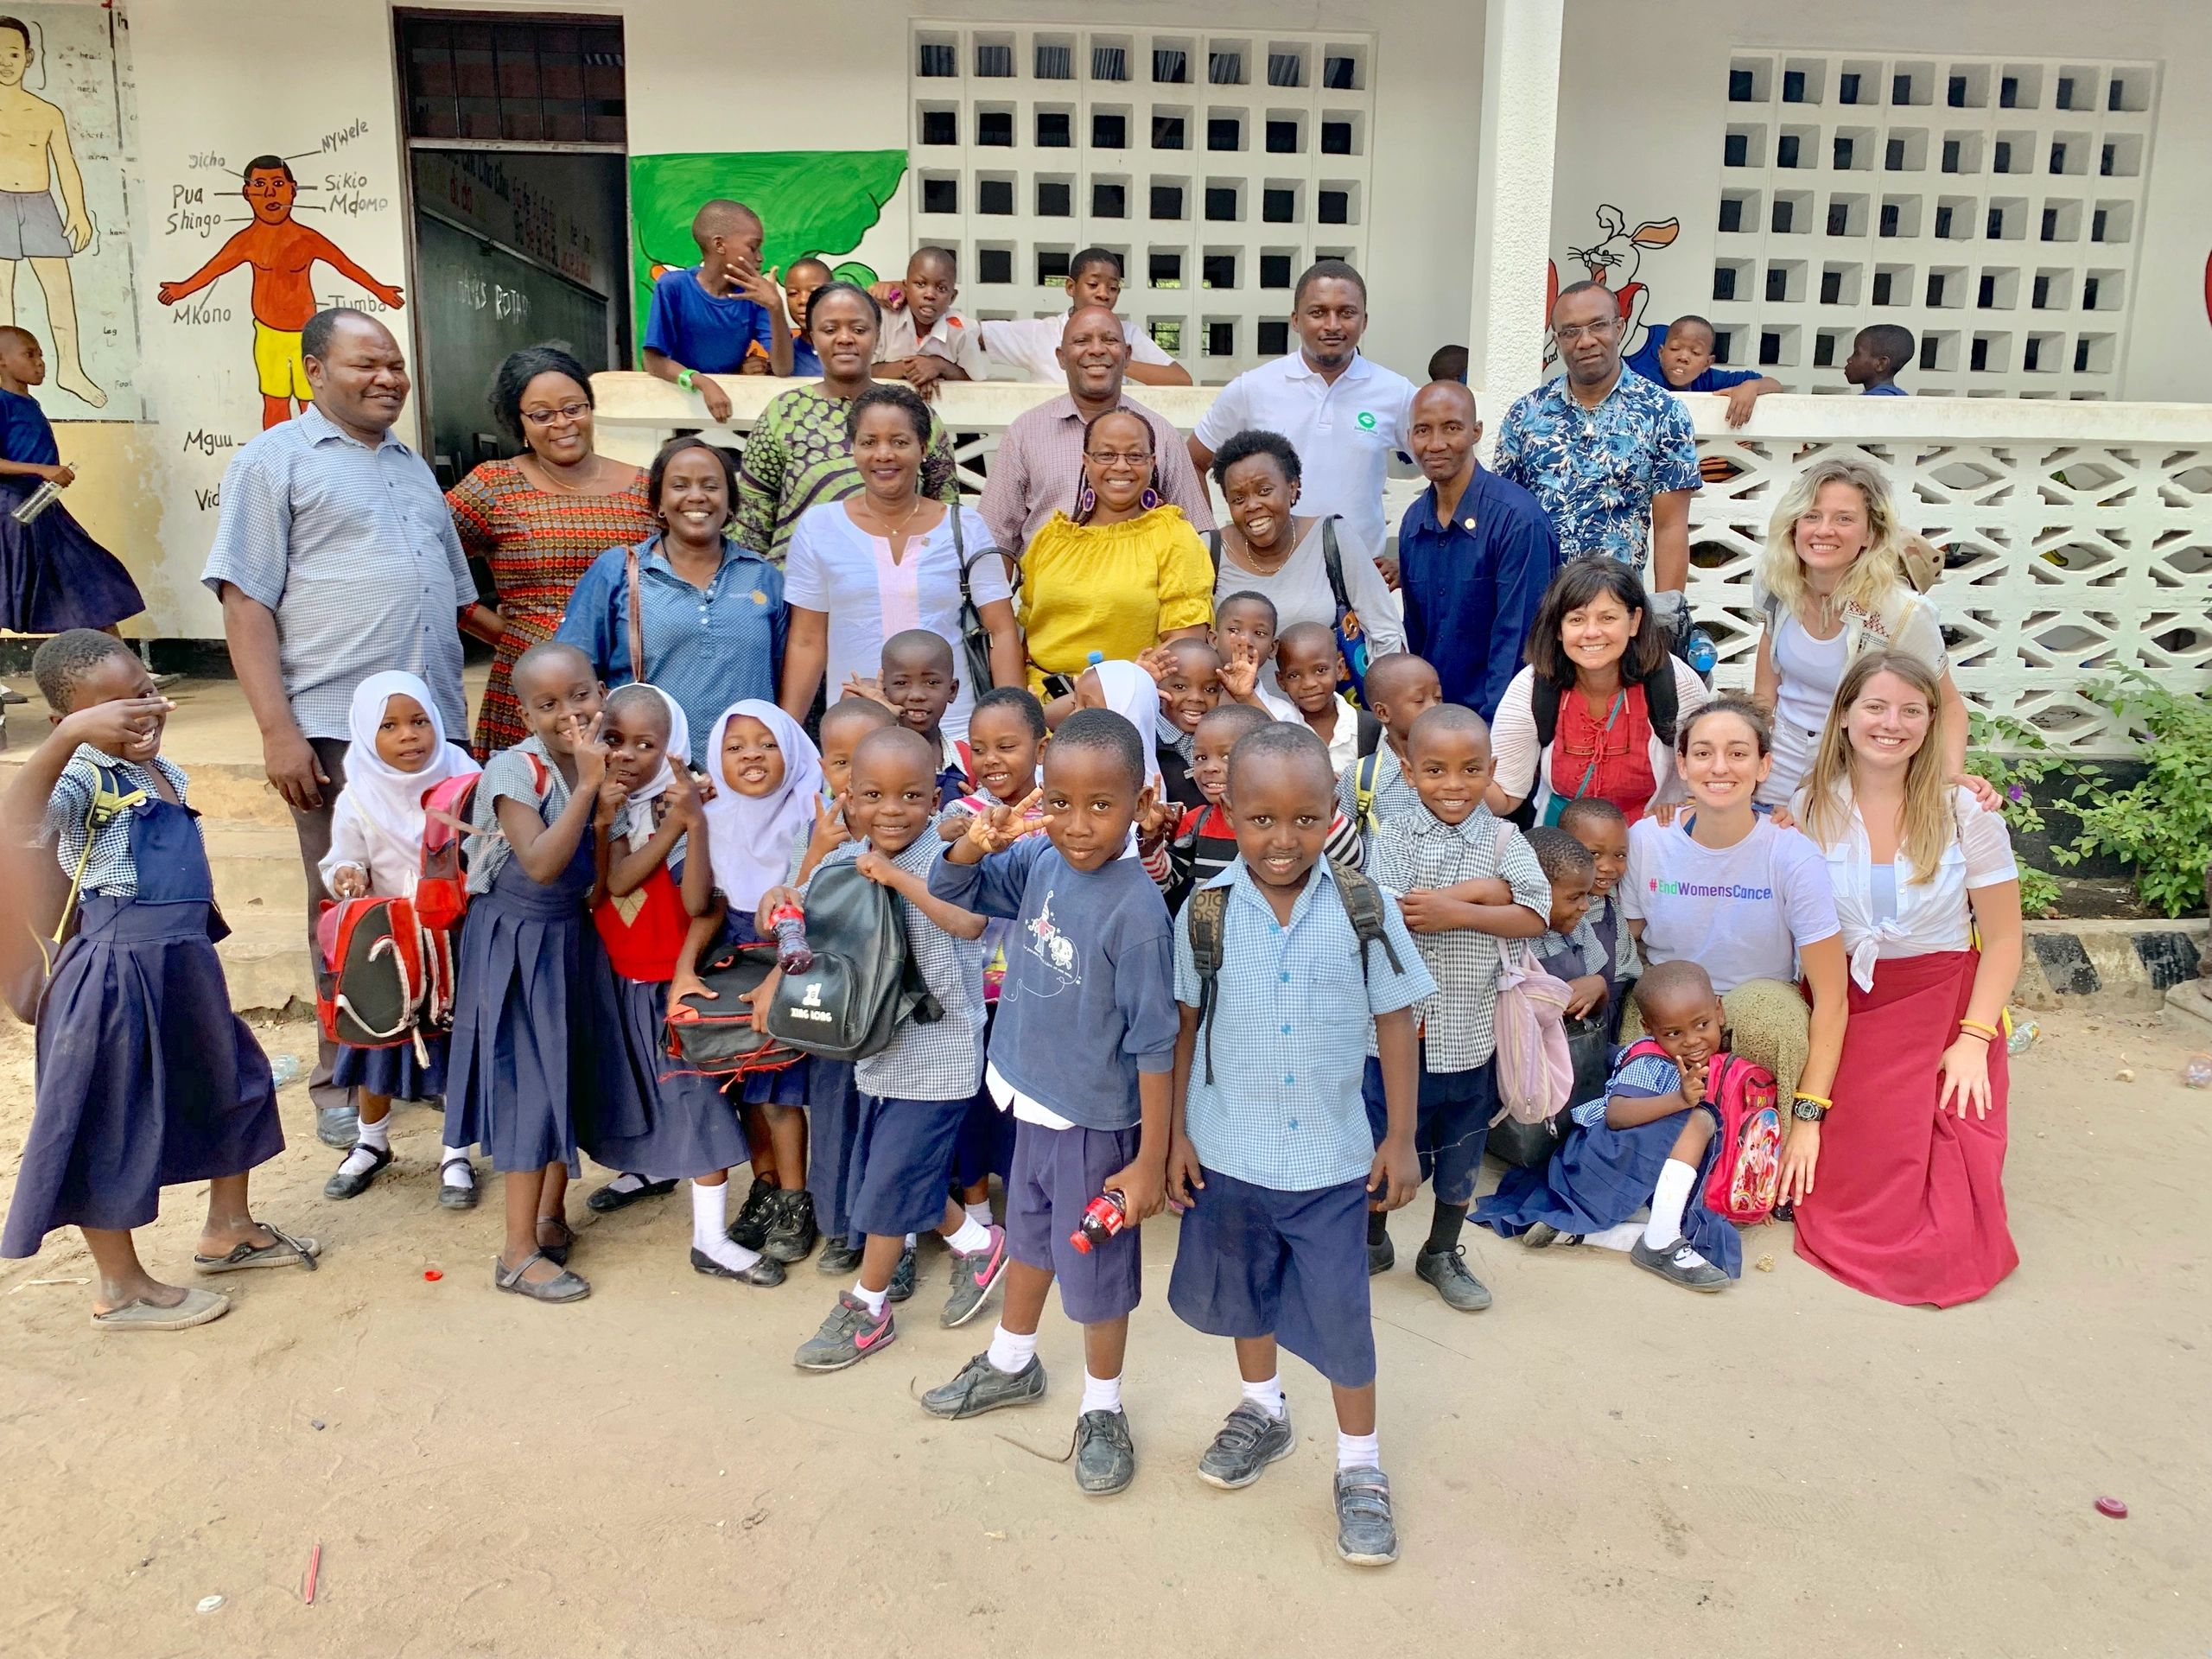 "{""blocks"":[{""key"":""33jb3"",""text"":""Presented desks to kindergarten children at Dar Es Salem, Tanzania, one of the poorest schools in Tanzania -- the 8th poorest country in the world. with Rotary Club "",""type"":""unstyled"",""depth"":0,""inlineStyleRanges"":[],""entityRanges"":[],""data"":{}}],""entityMap"":{}}"